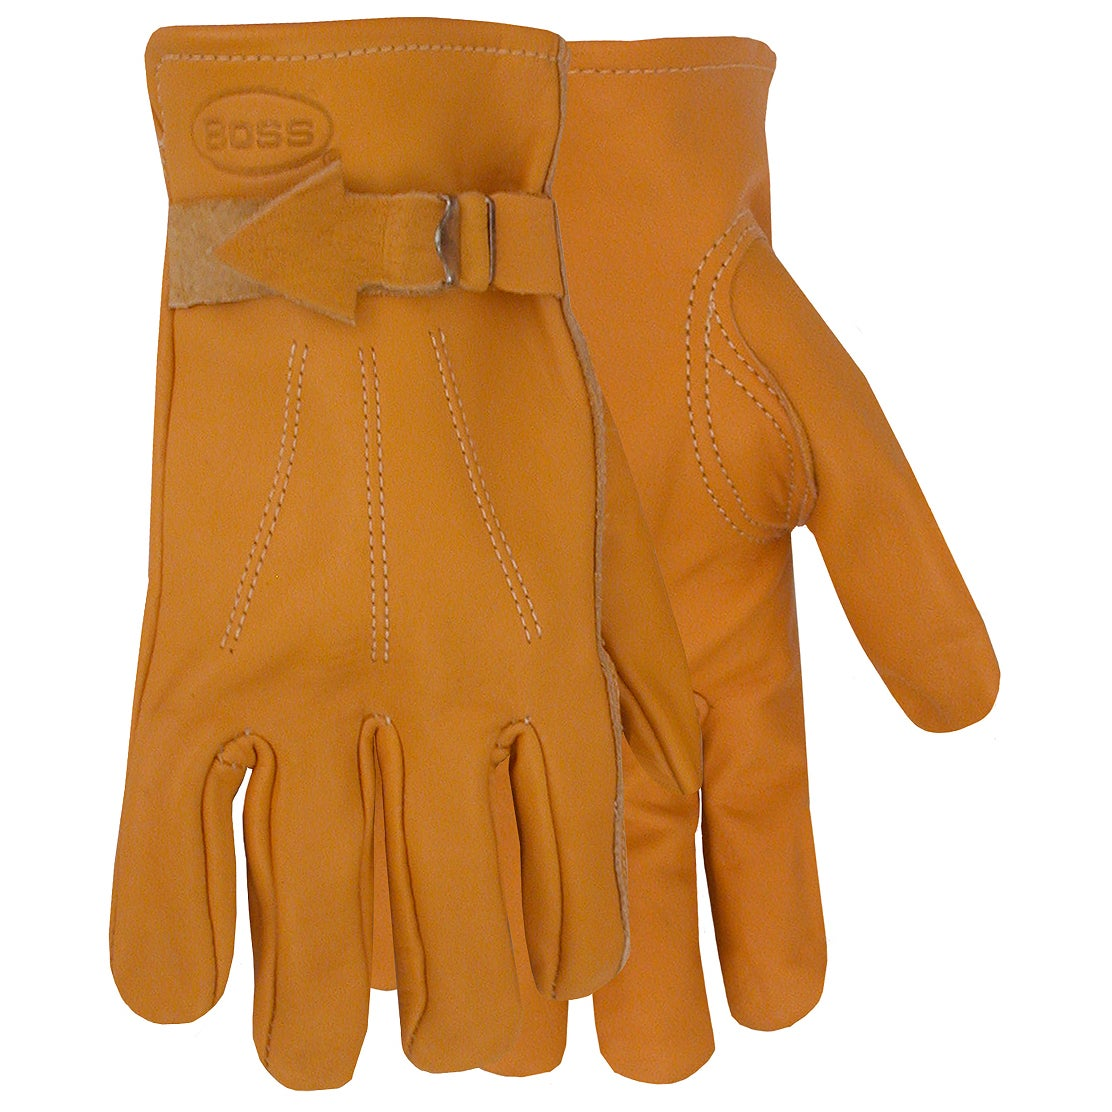 fcbfddece0d2c Shop Boss Gloves 6023J Jumbo Premium Grain Leather Gloves - Free Shipping  On Orders Over $45 - Overstock.com - 12544897